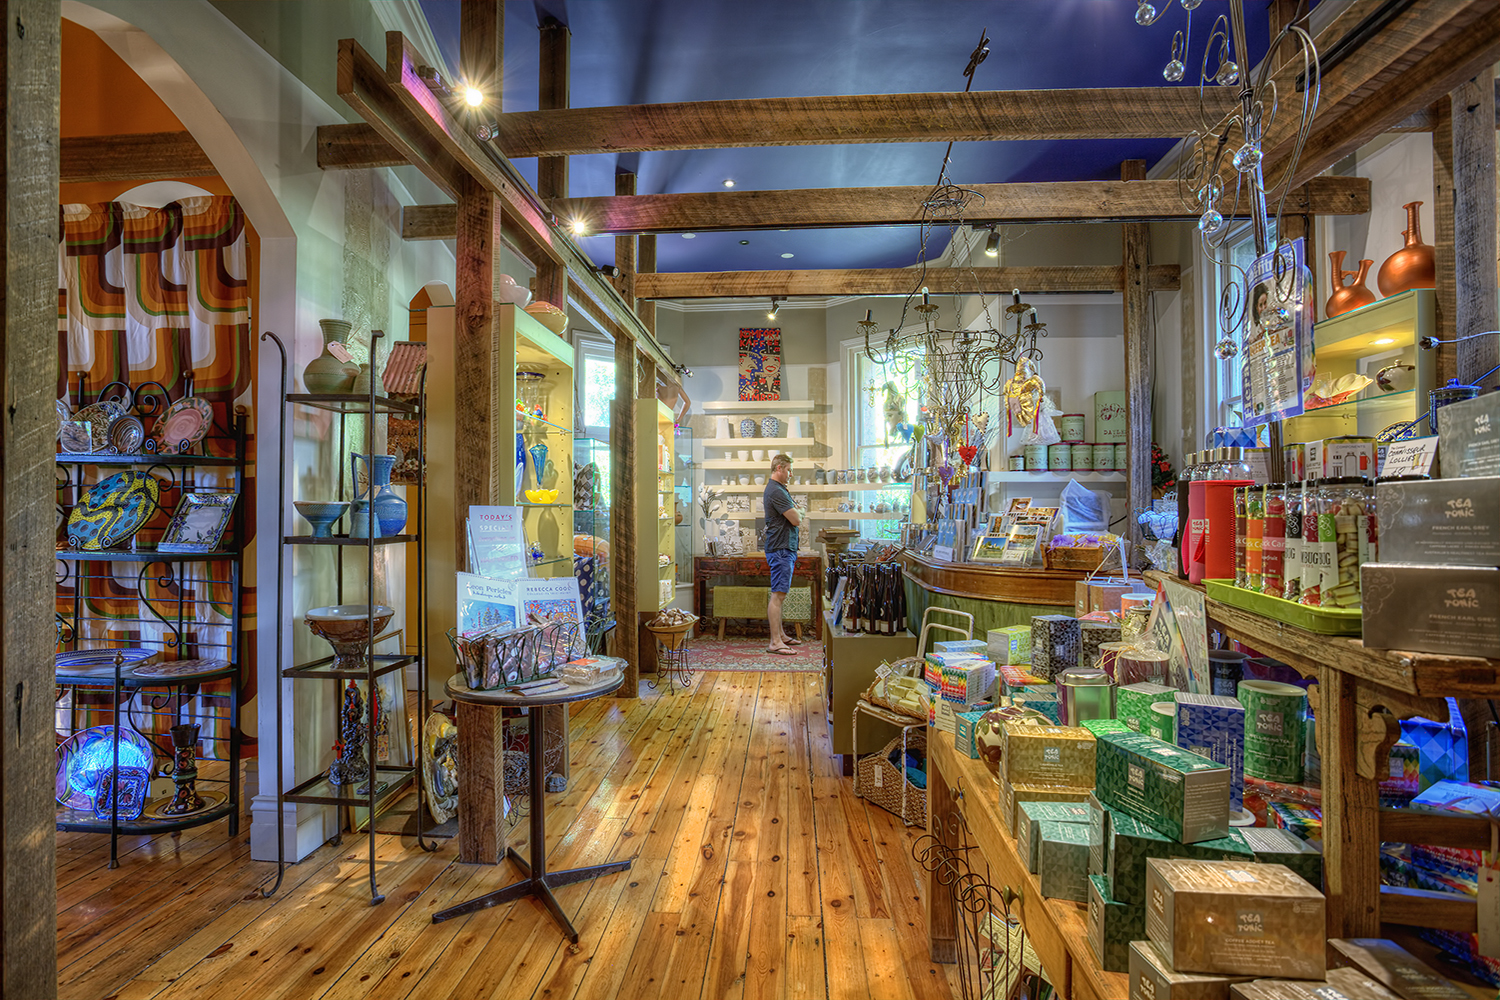 Shopping galore at The Convent's gift shop